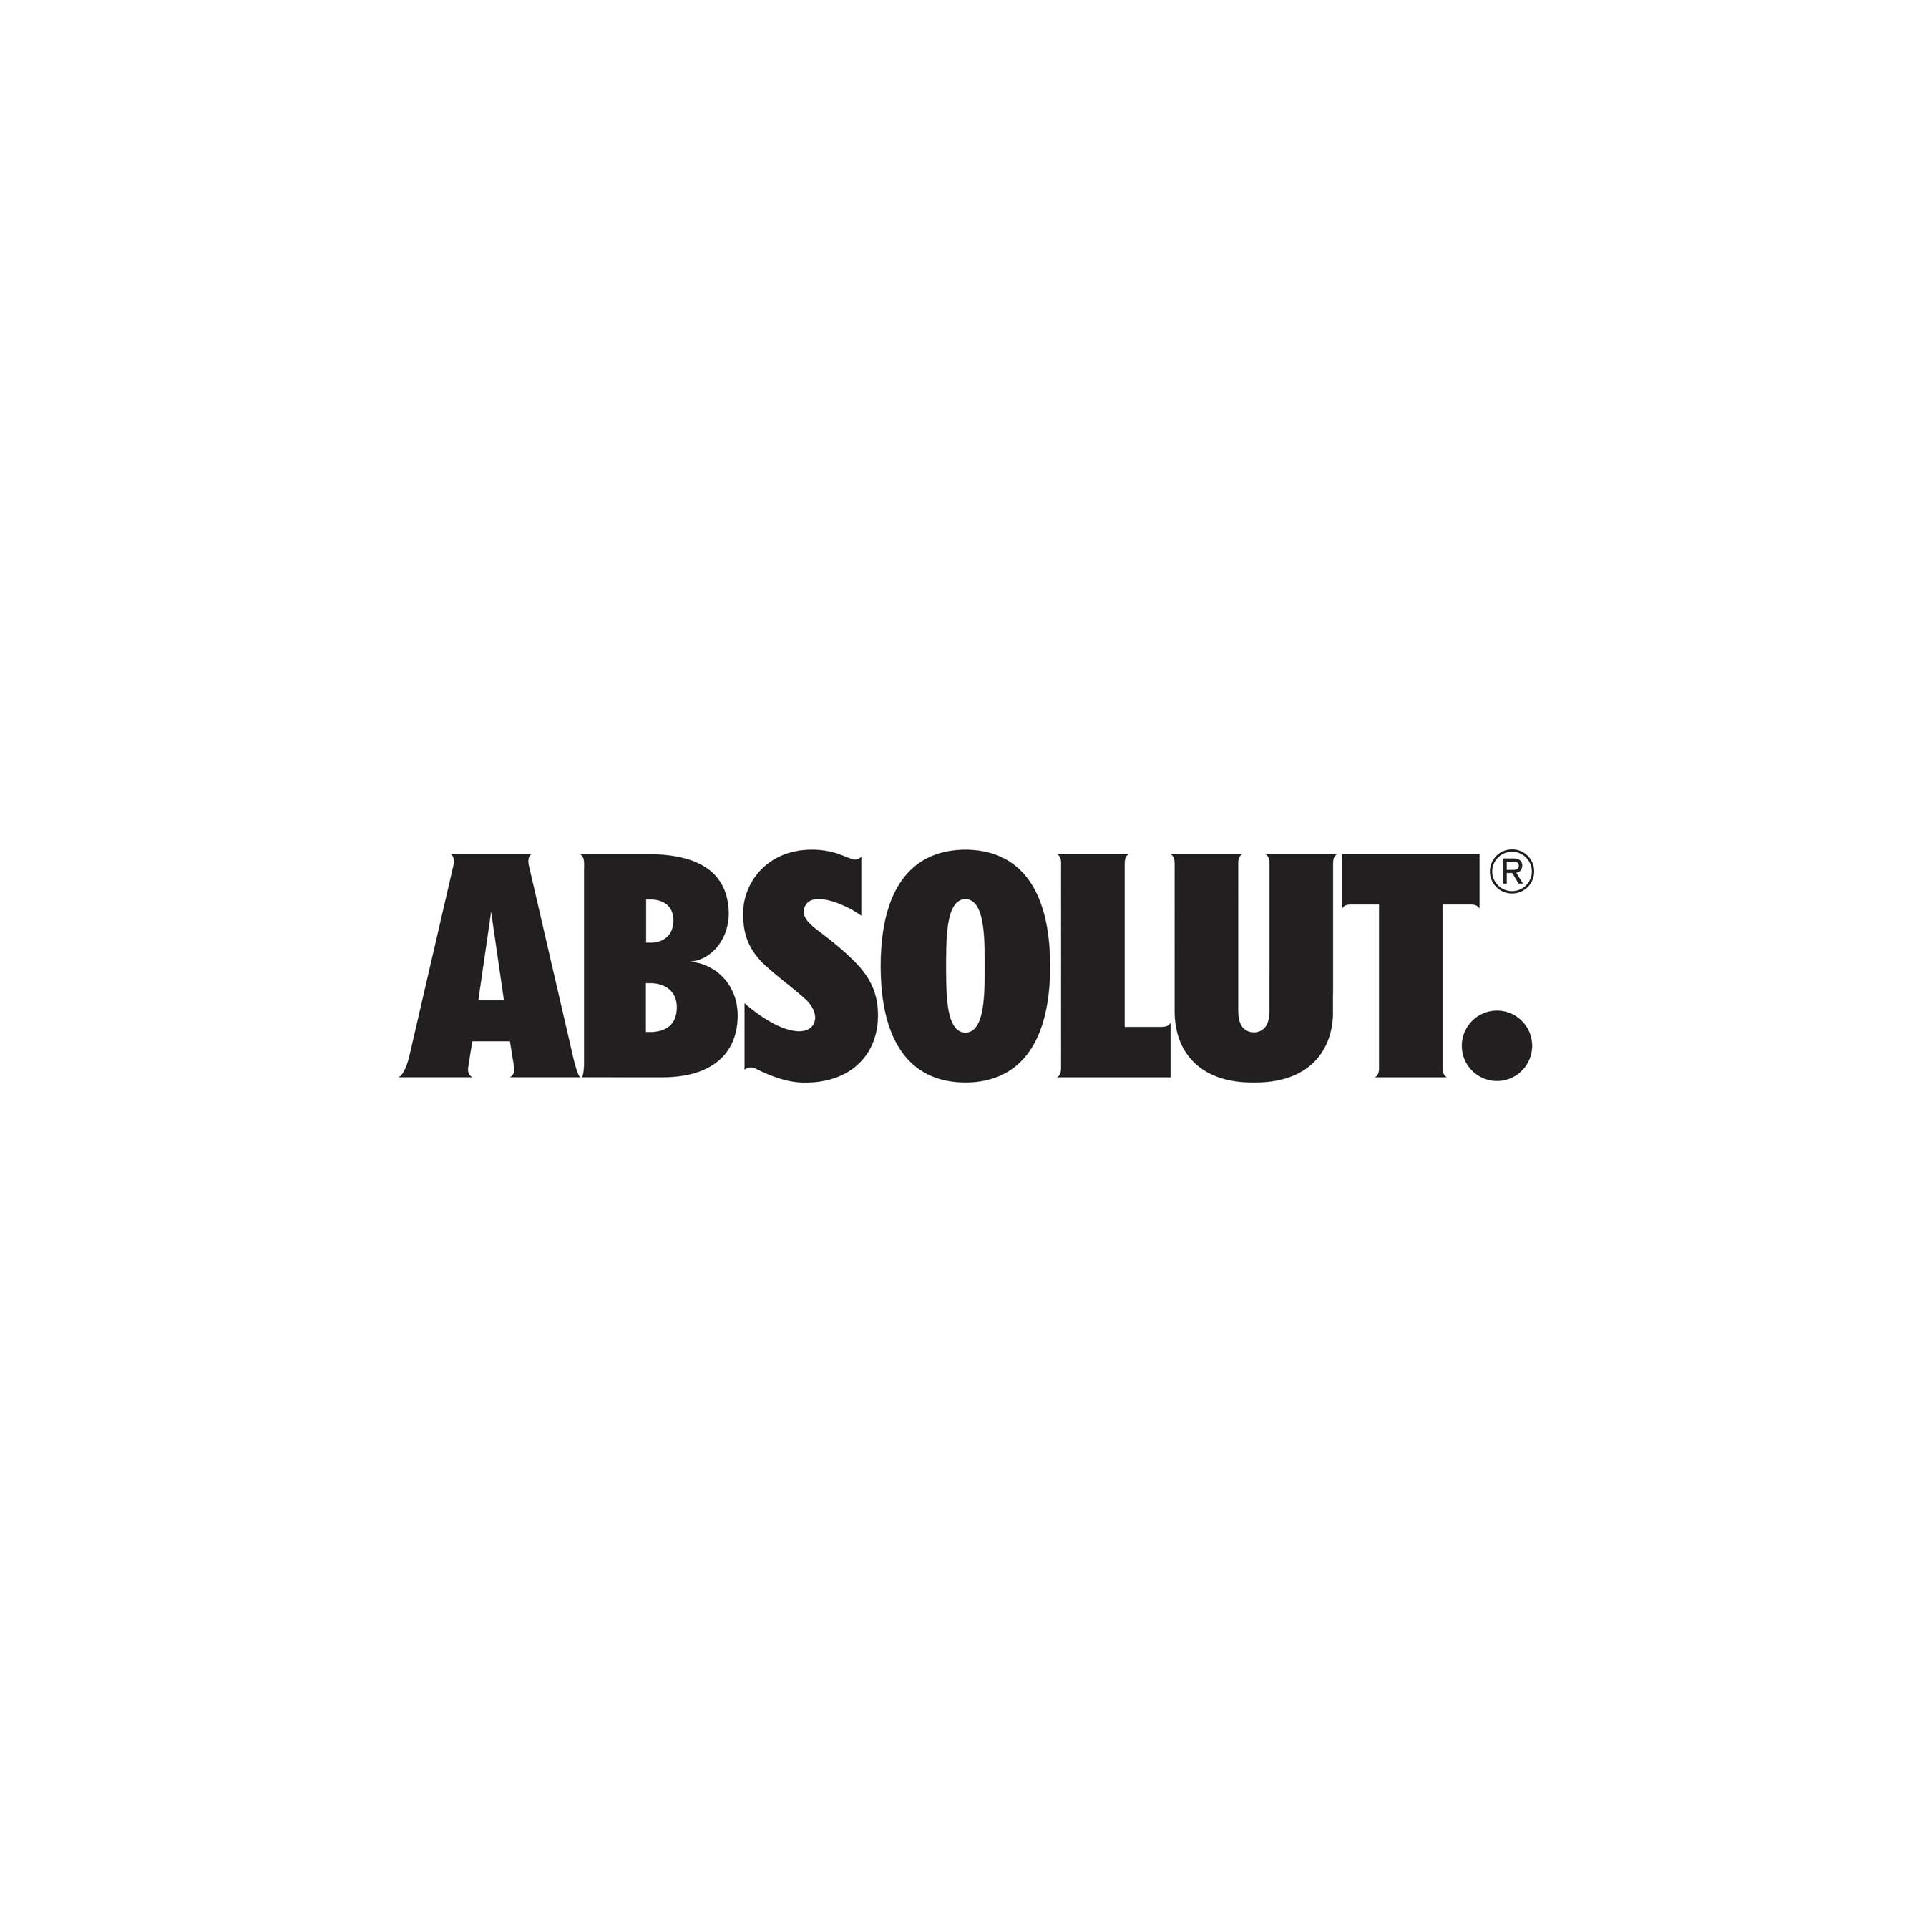 absolut teams up with rita ora to announce the open mic project by